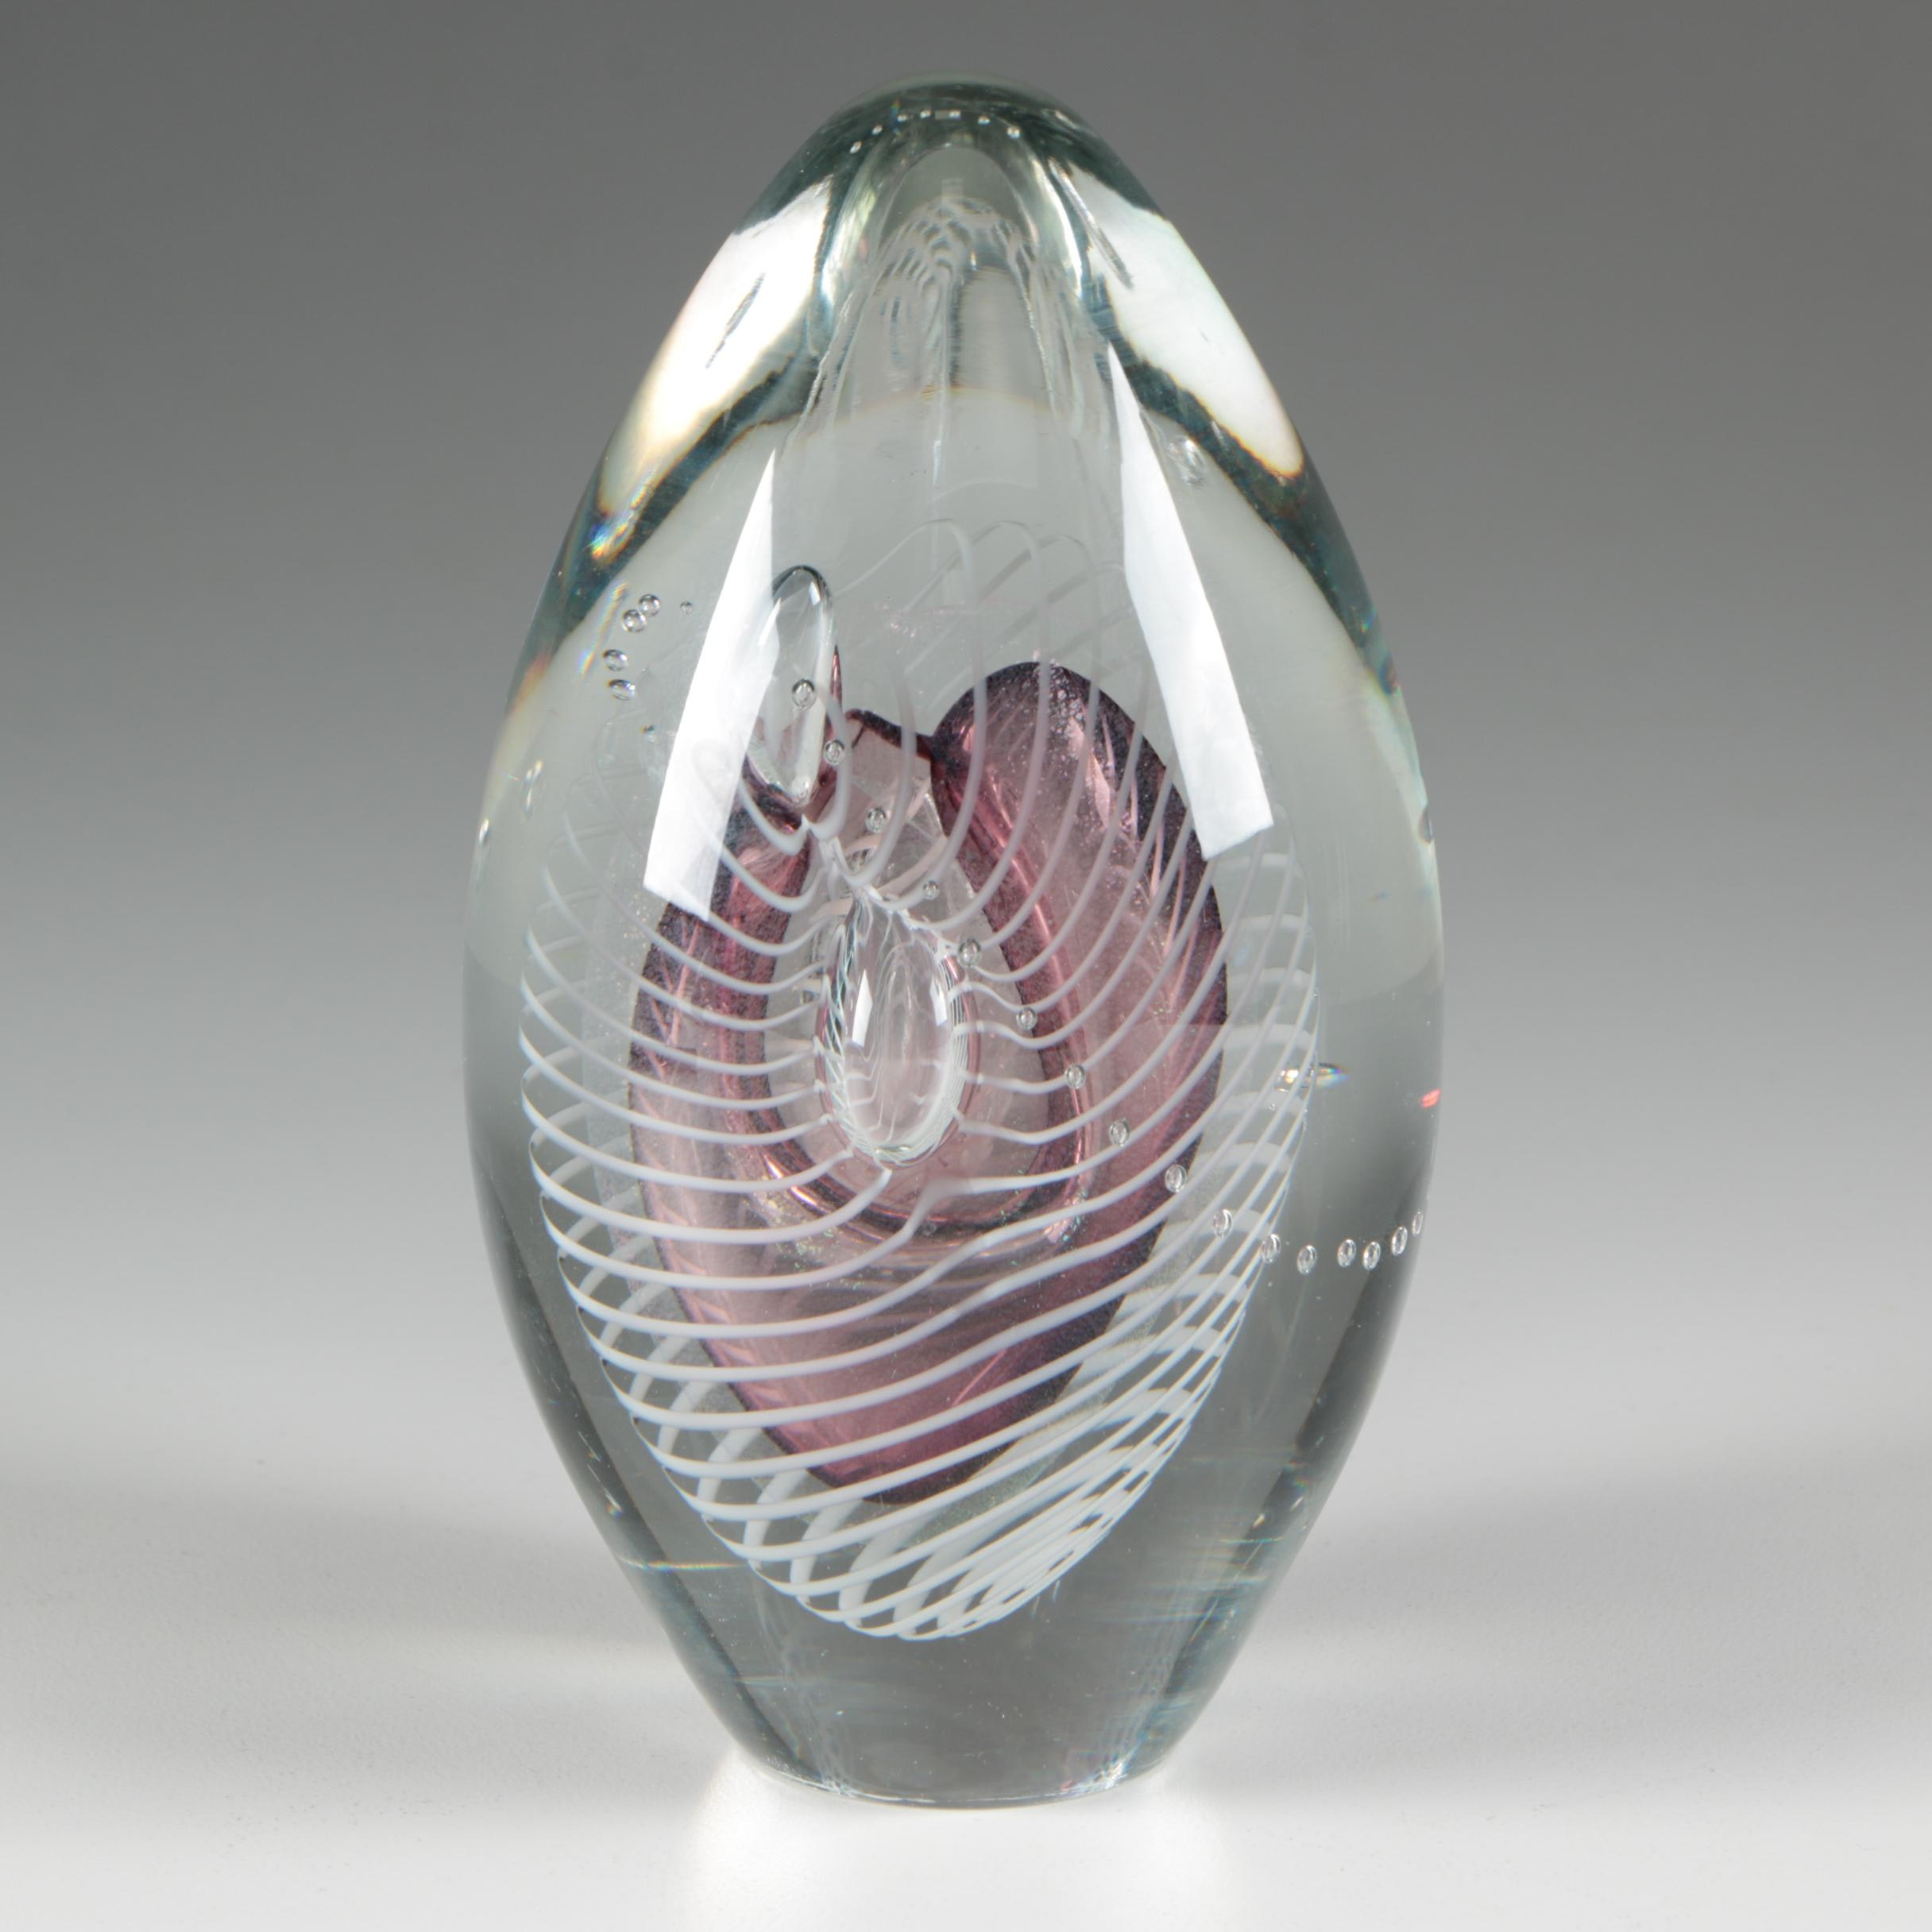 Robert Eickholt Blown Glass Paperweight, 1991